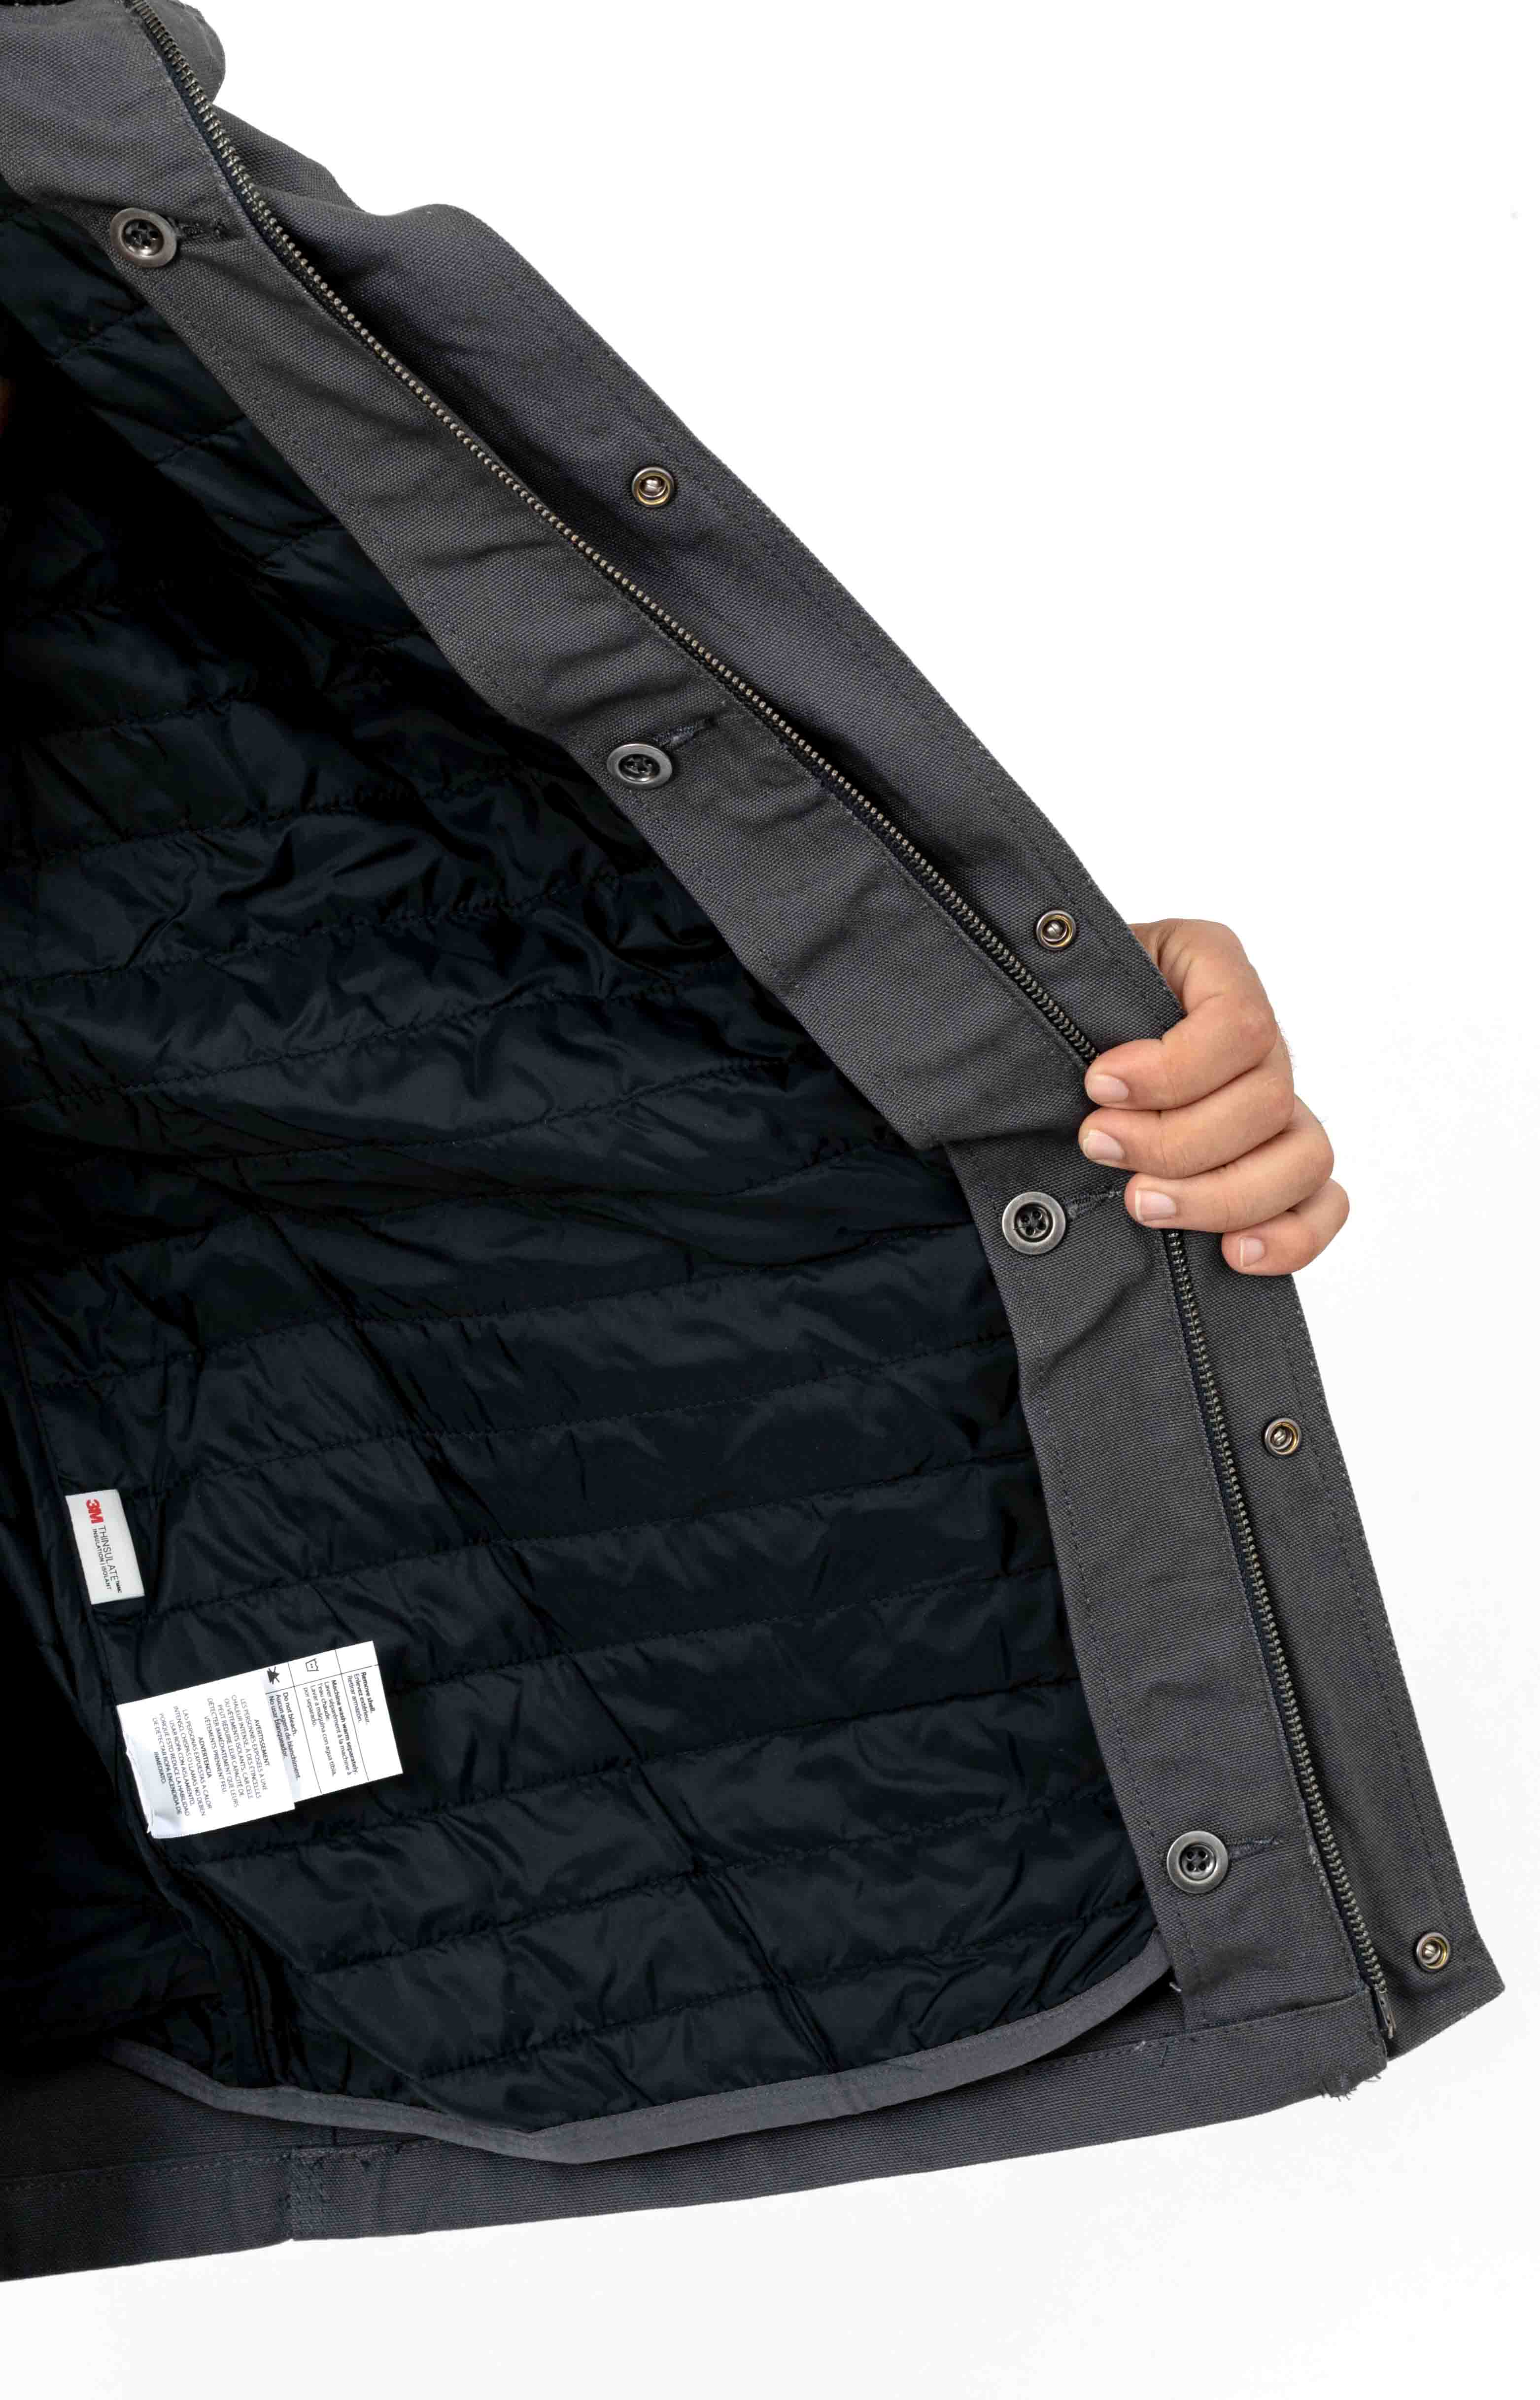 (103289) Filed Coat - Shadow/Black Lining  4